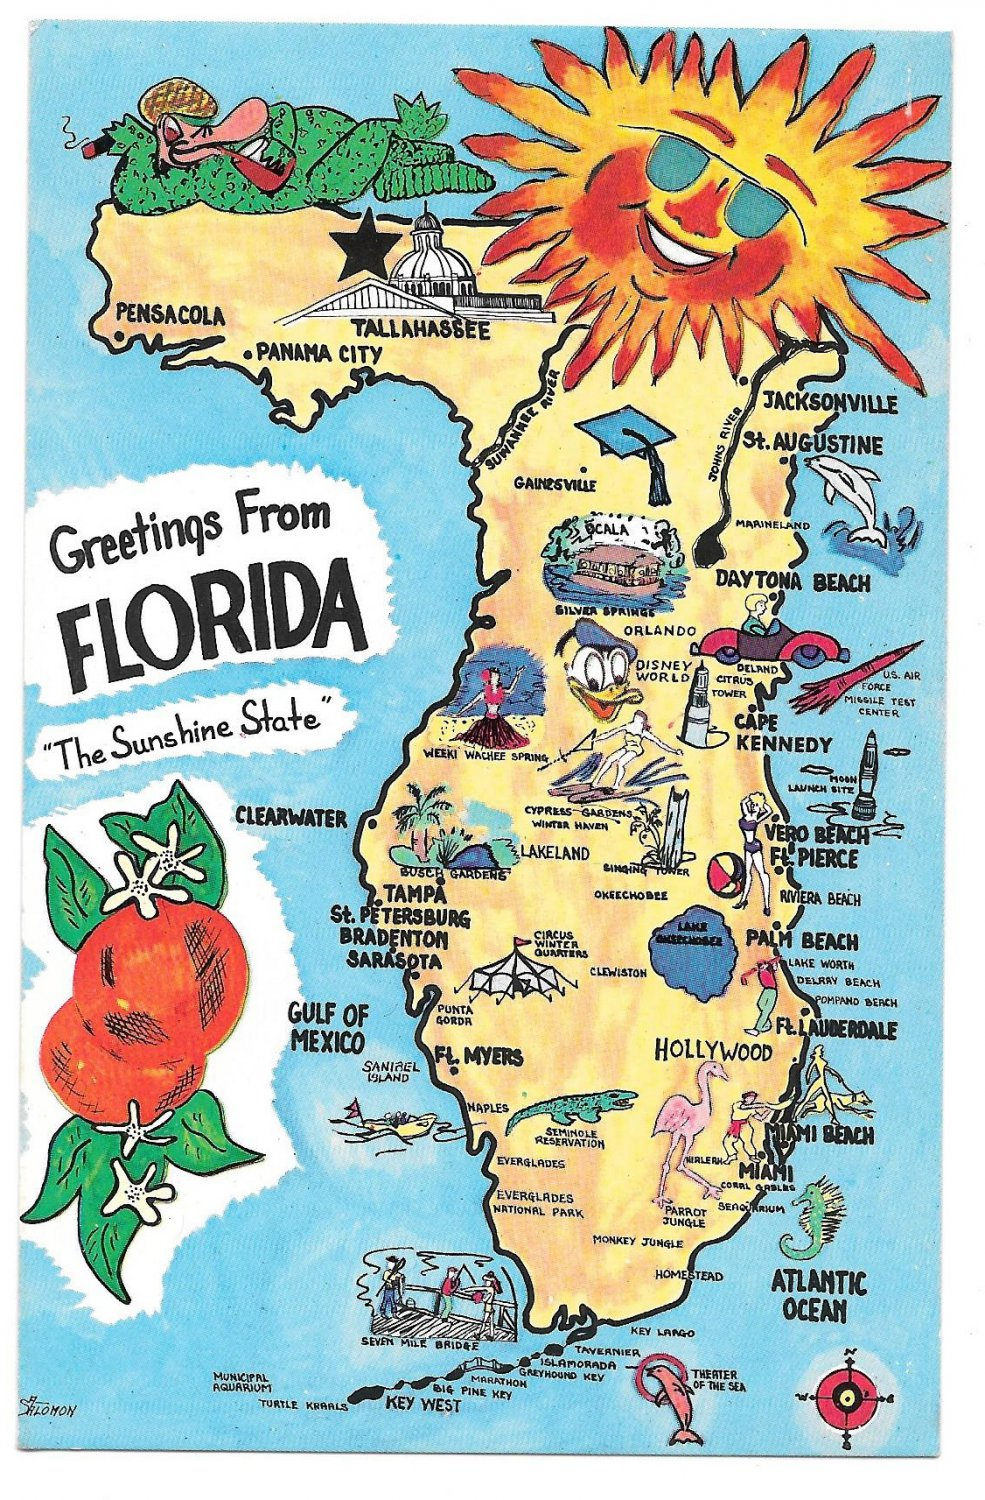 map orlando florida surrounding cities with Florida Map Landmarks Cities Vintage on Miami Map additionally San Diego Area Road Map in addition Jamaica map also Al also Florida Map Landmarks Cities Vintage.